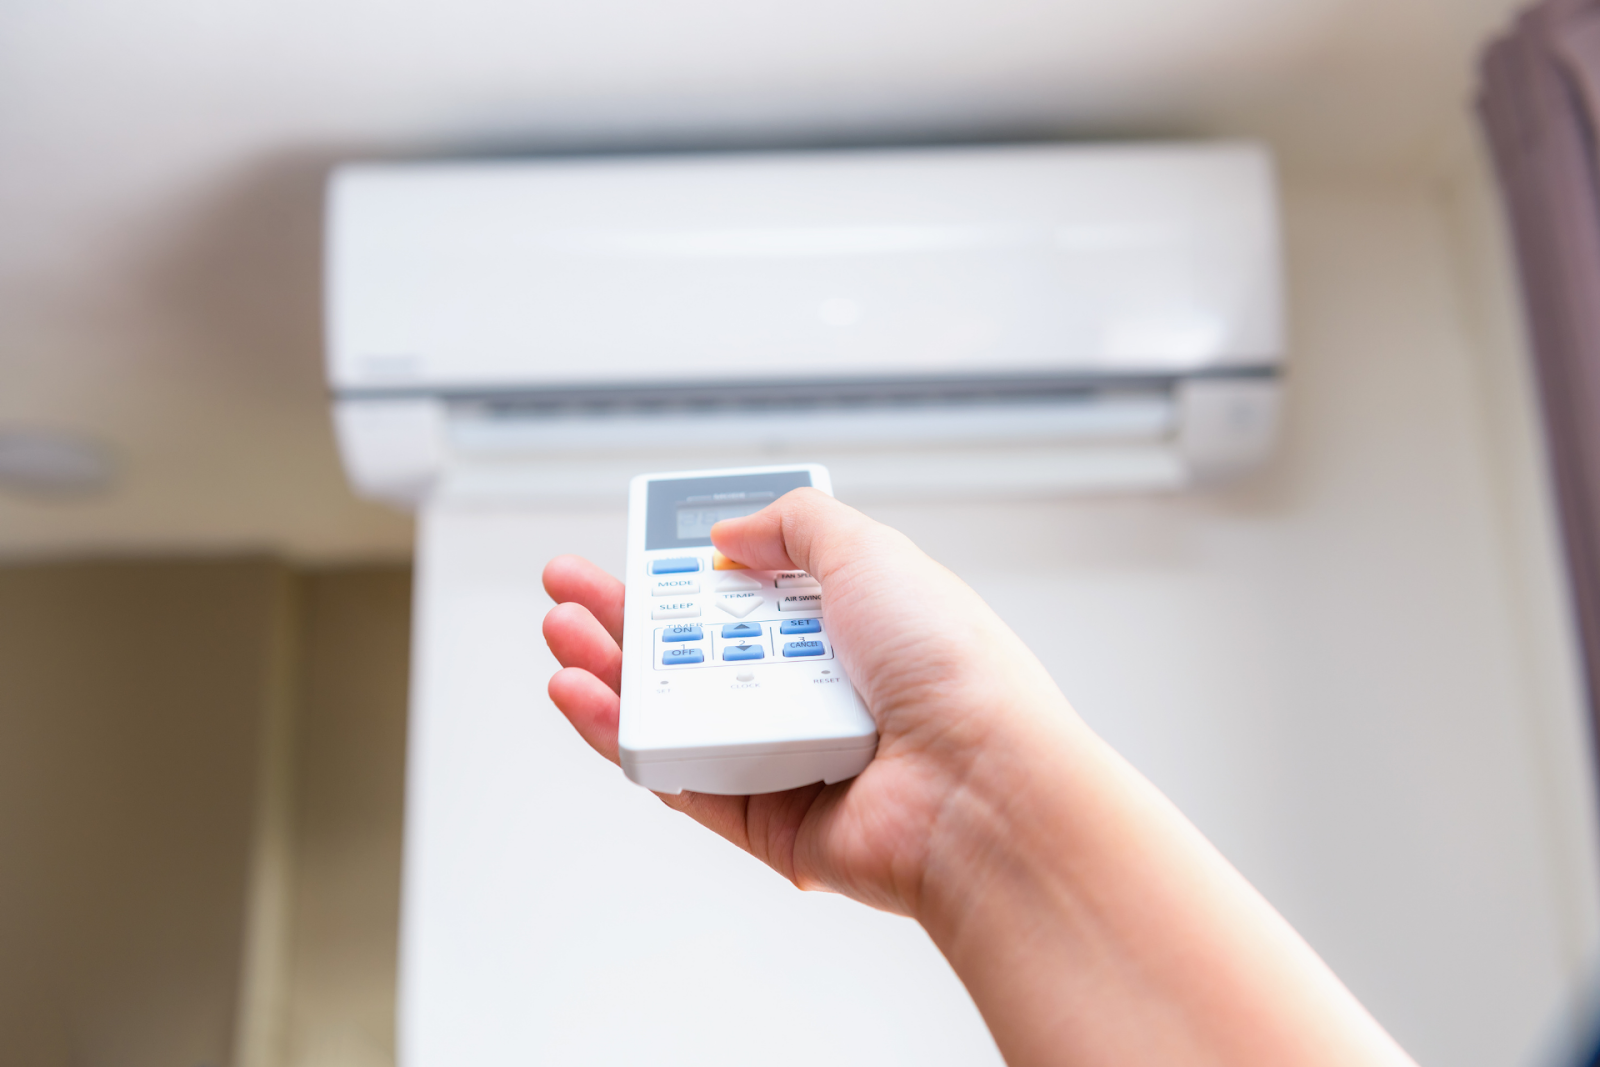 person turning on air conditioner